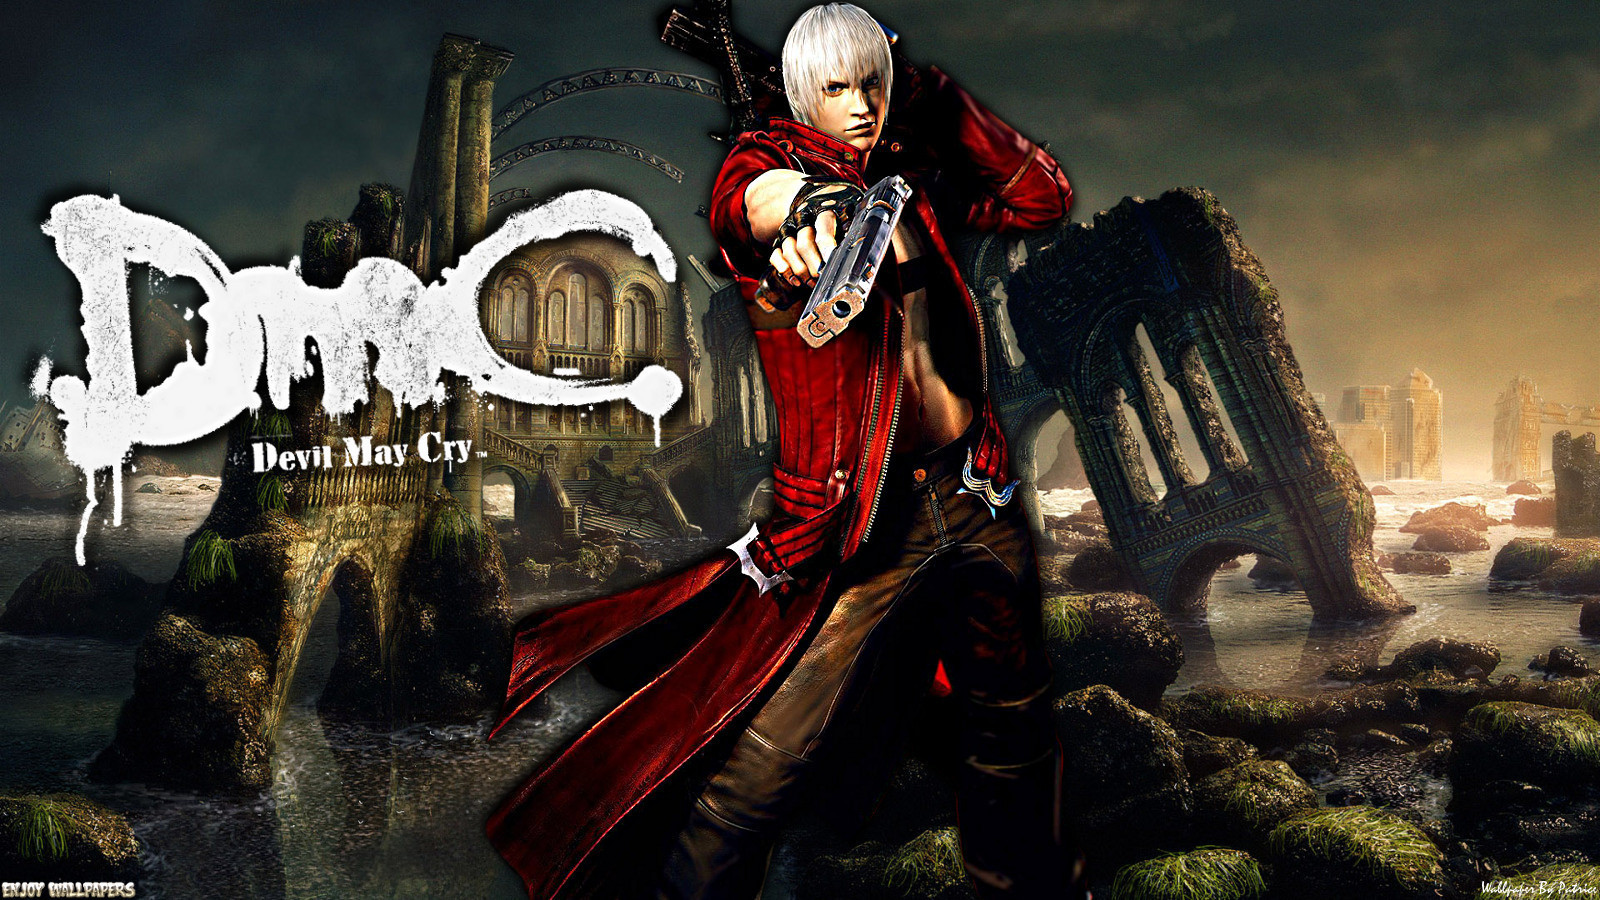 Free Download Download Devil May Cry Wallpaper Dante For Desktop